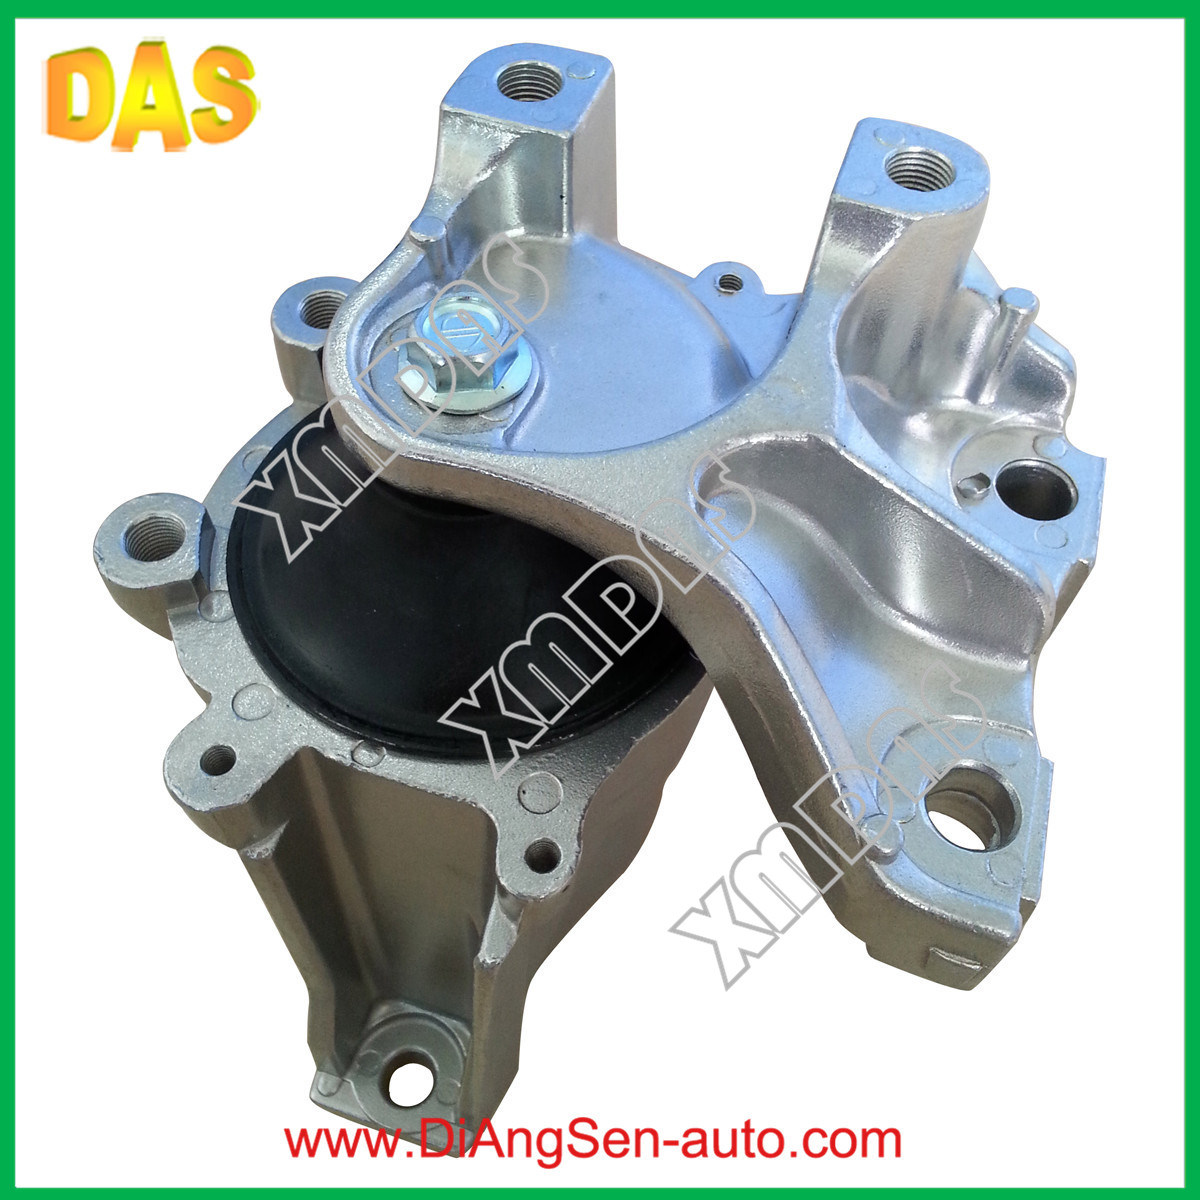 China Auto Spare Parts Replacement Engine Mount For Honda 50820 Swg 2011 Ridgeline Suspension Control Arm Front Left Lower W0133 T01 Motor